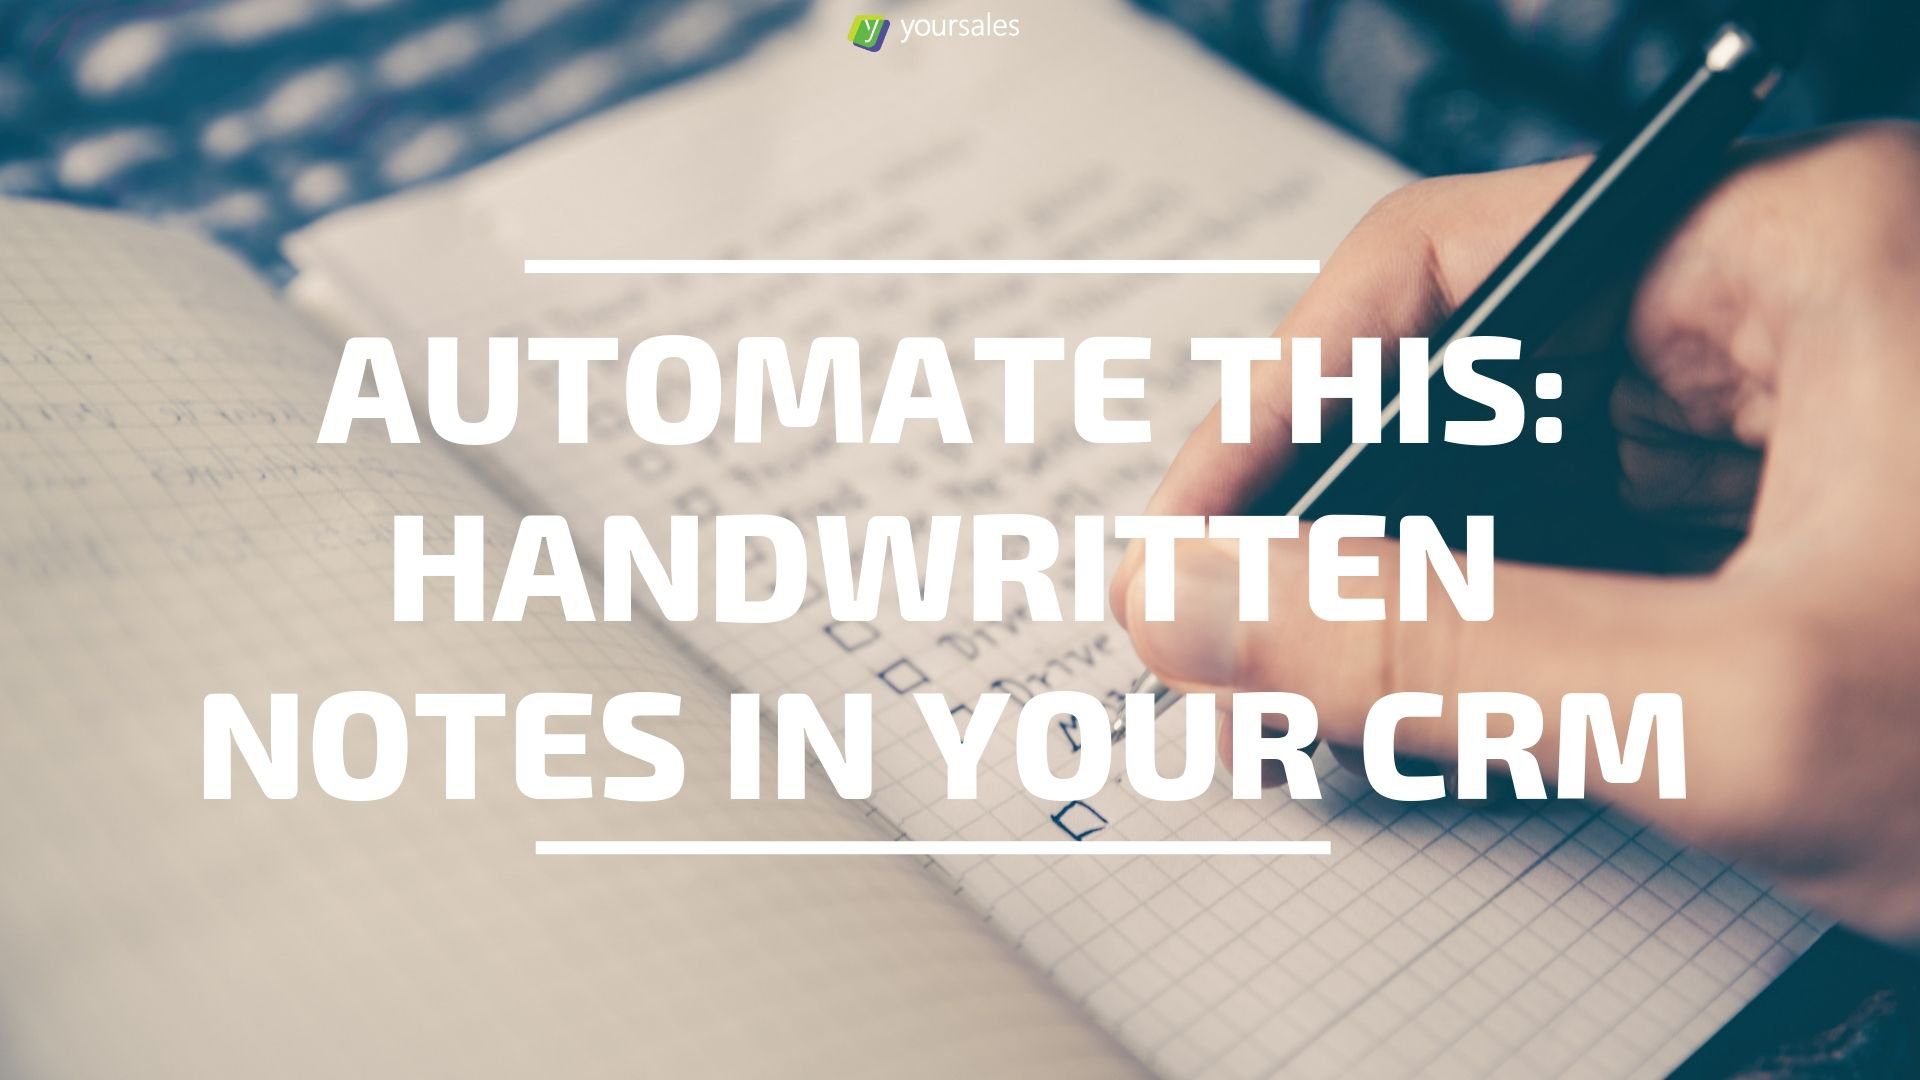 Automate This: Handwritten Notes in Your CRM